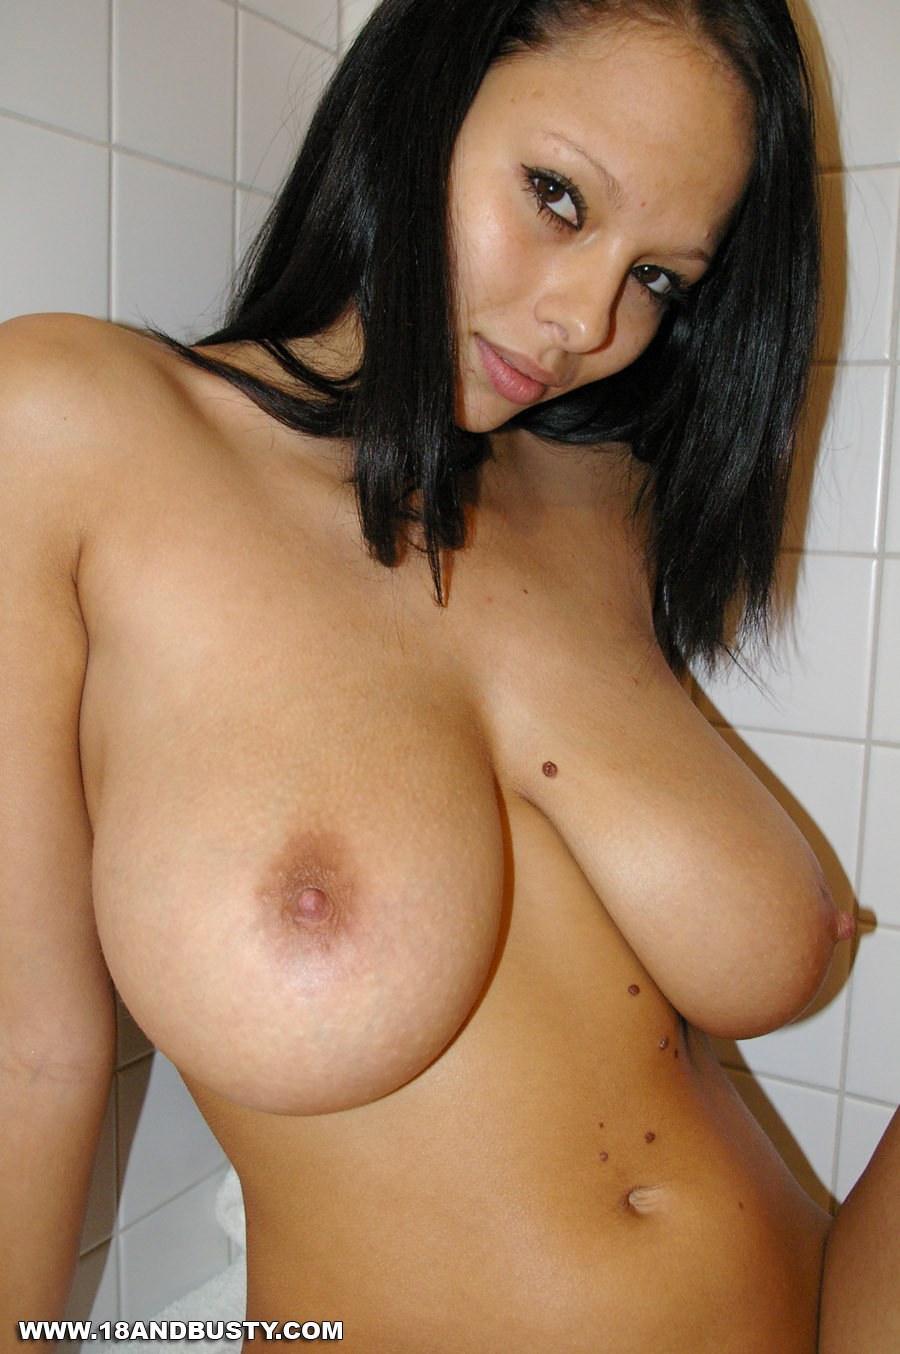 naked well proportioned body mature older women